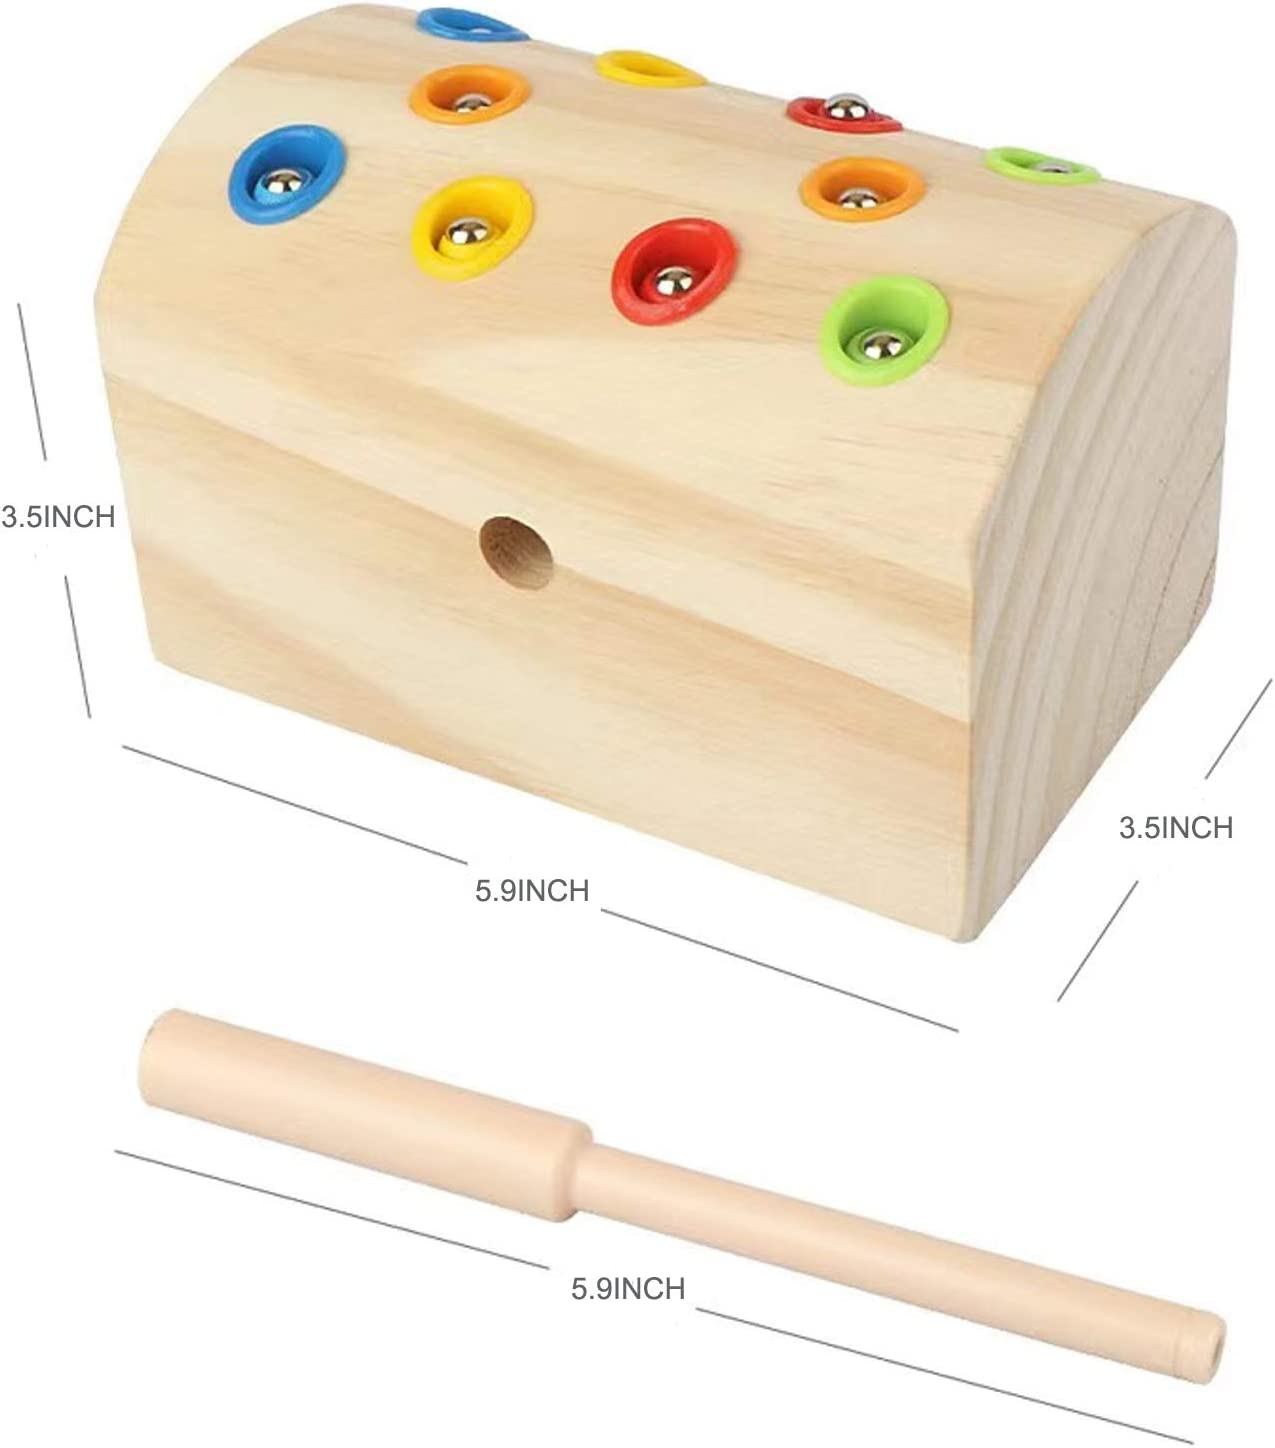 Mfumyy Fun Insect Magnetic Catching Game Educational Learning Toy for Kids,Fine Motor Skills Wooden Toy,for Toddlers Boys Girls 3 Ages+